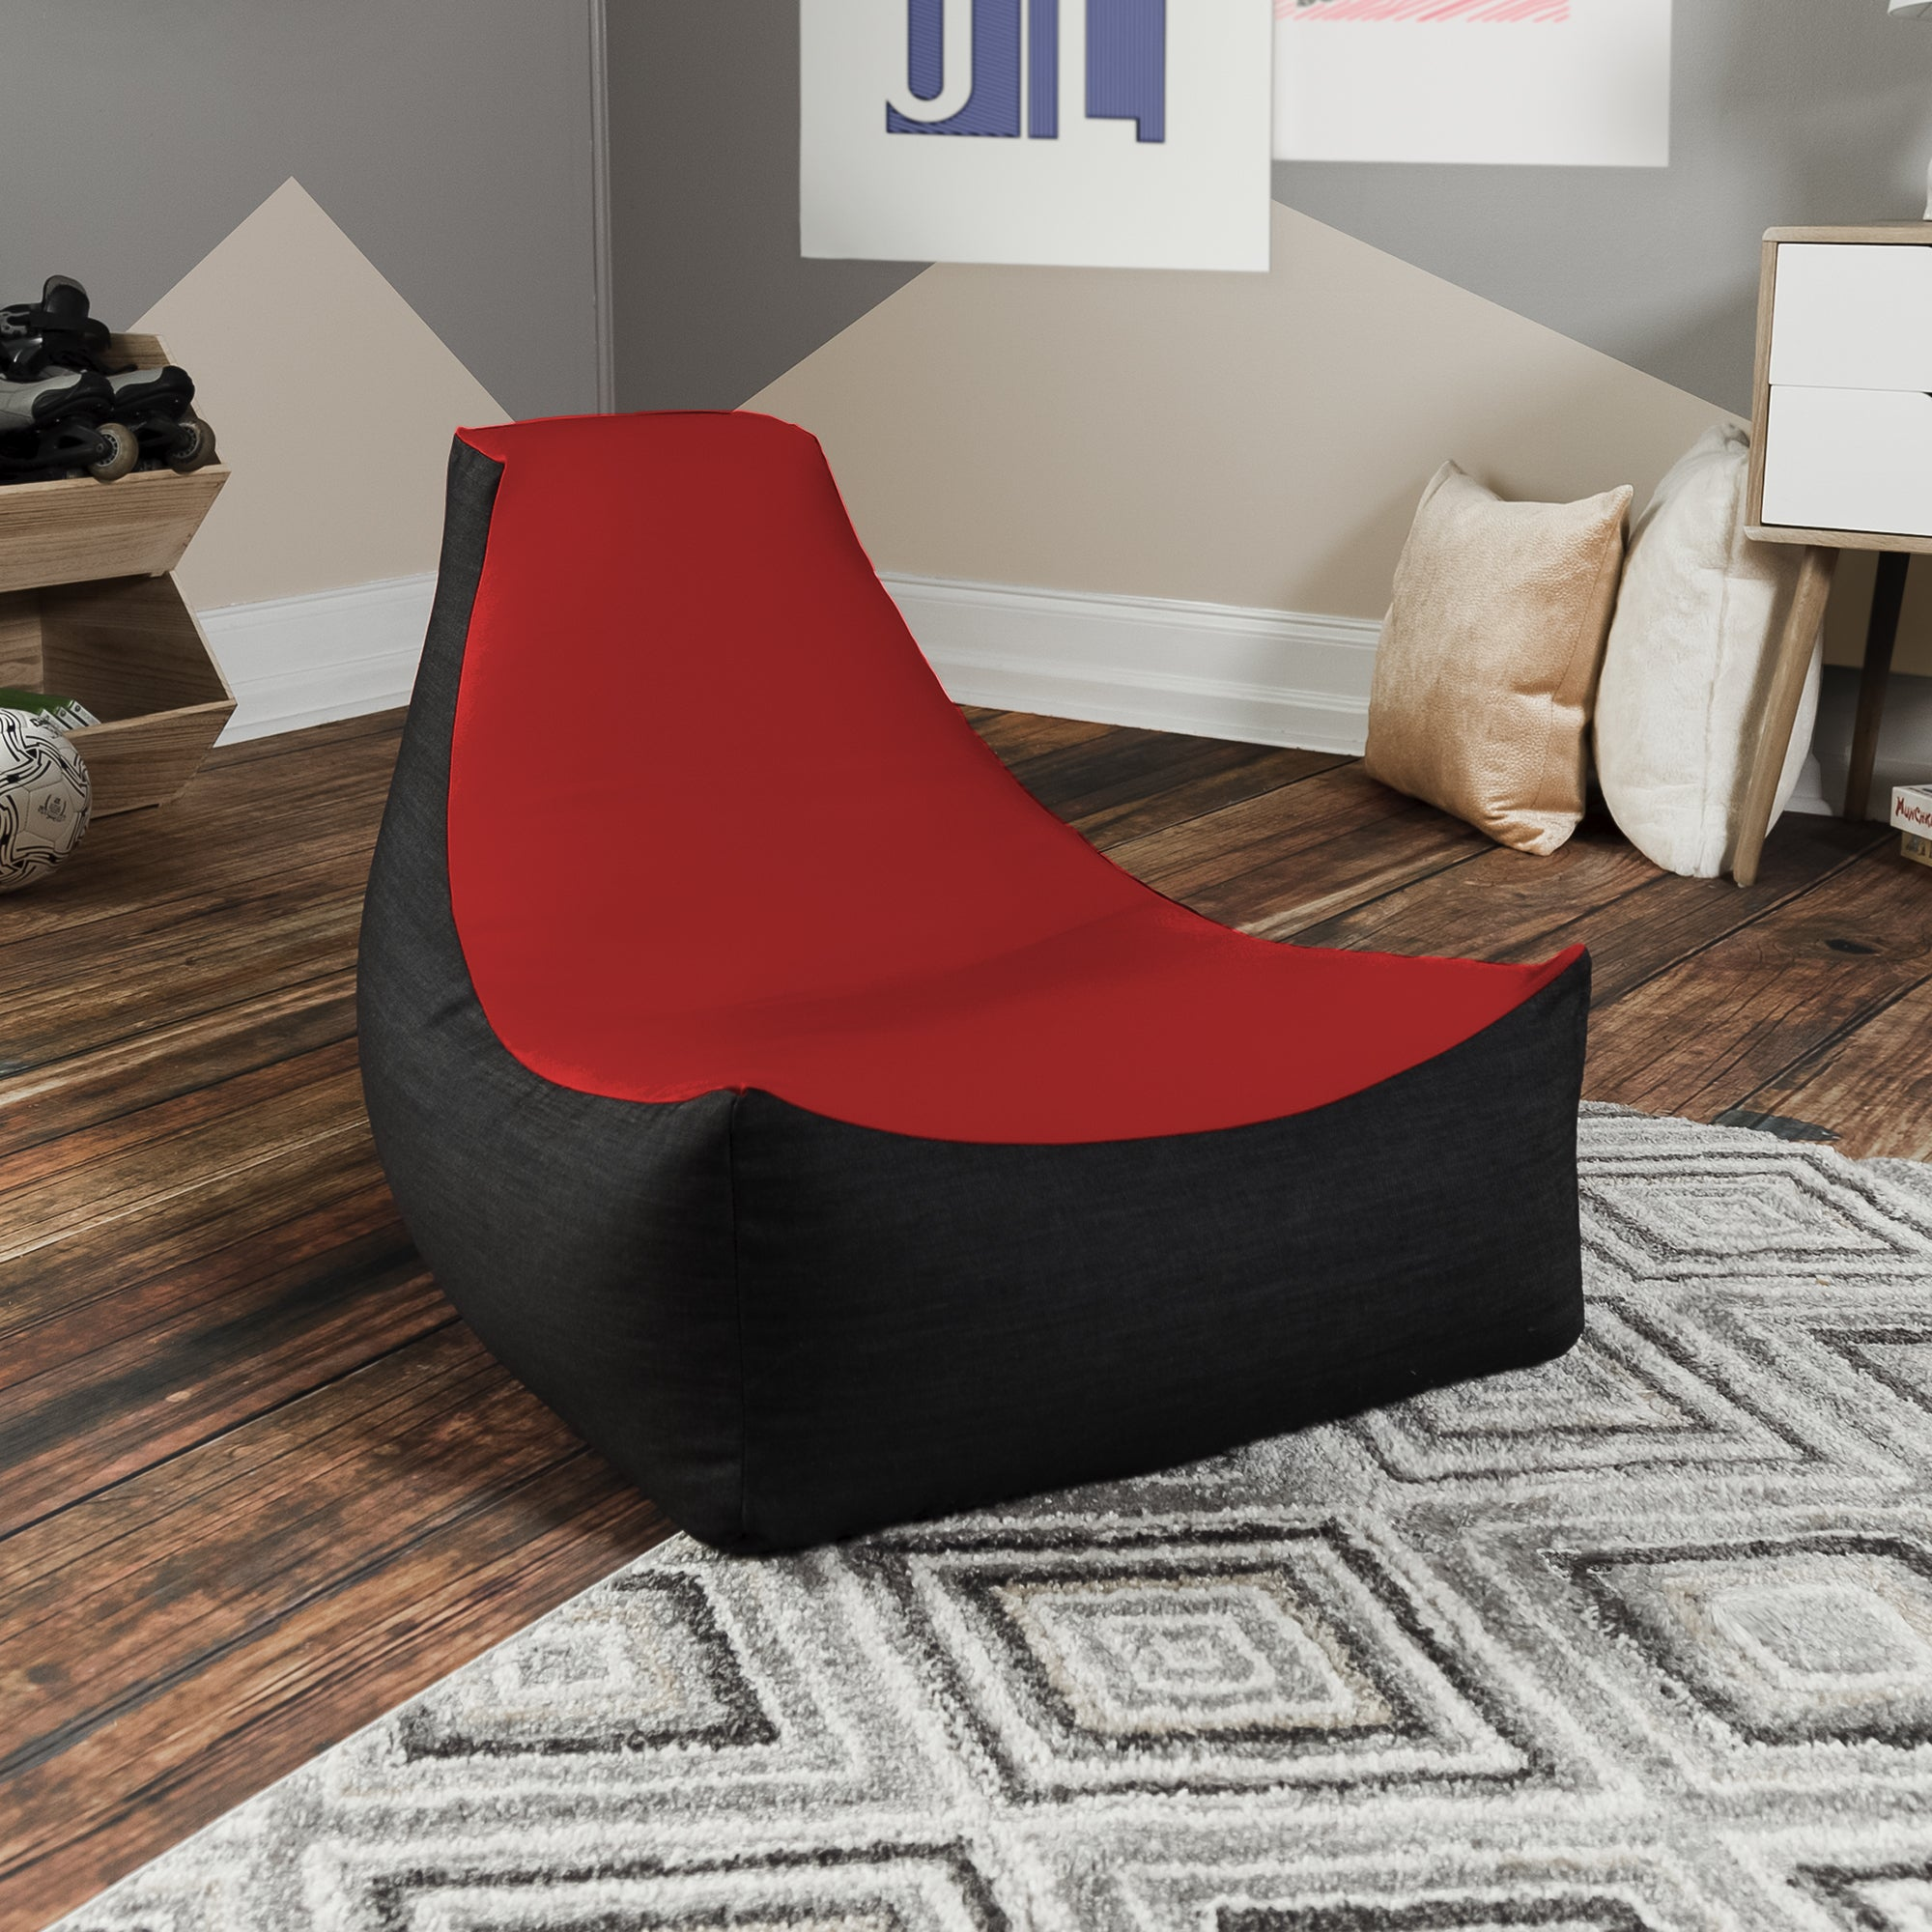 Terrific Details About Jaxx Strato Bean Bag Gaming Chair Caraccident5 Cool Chair Designs And Ideas Caraccident5Info